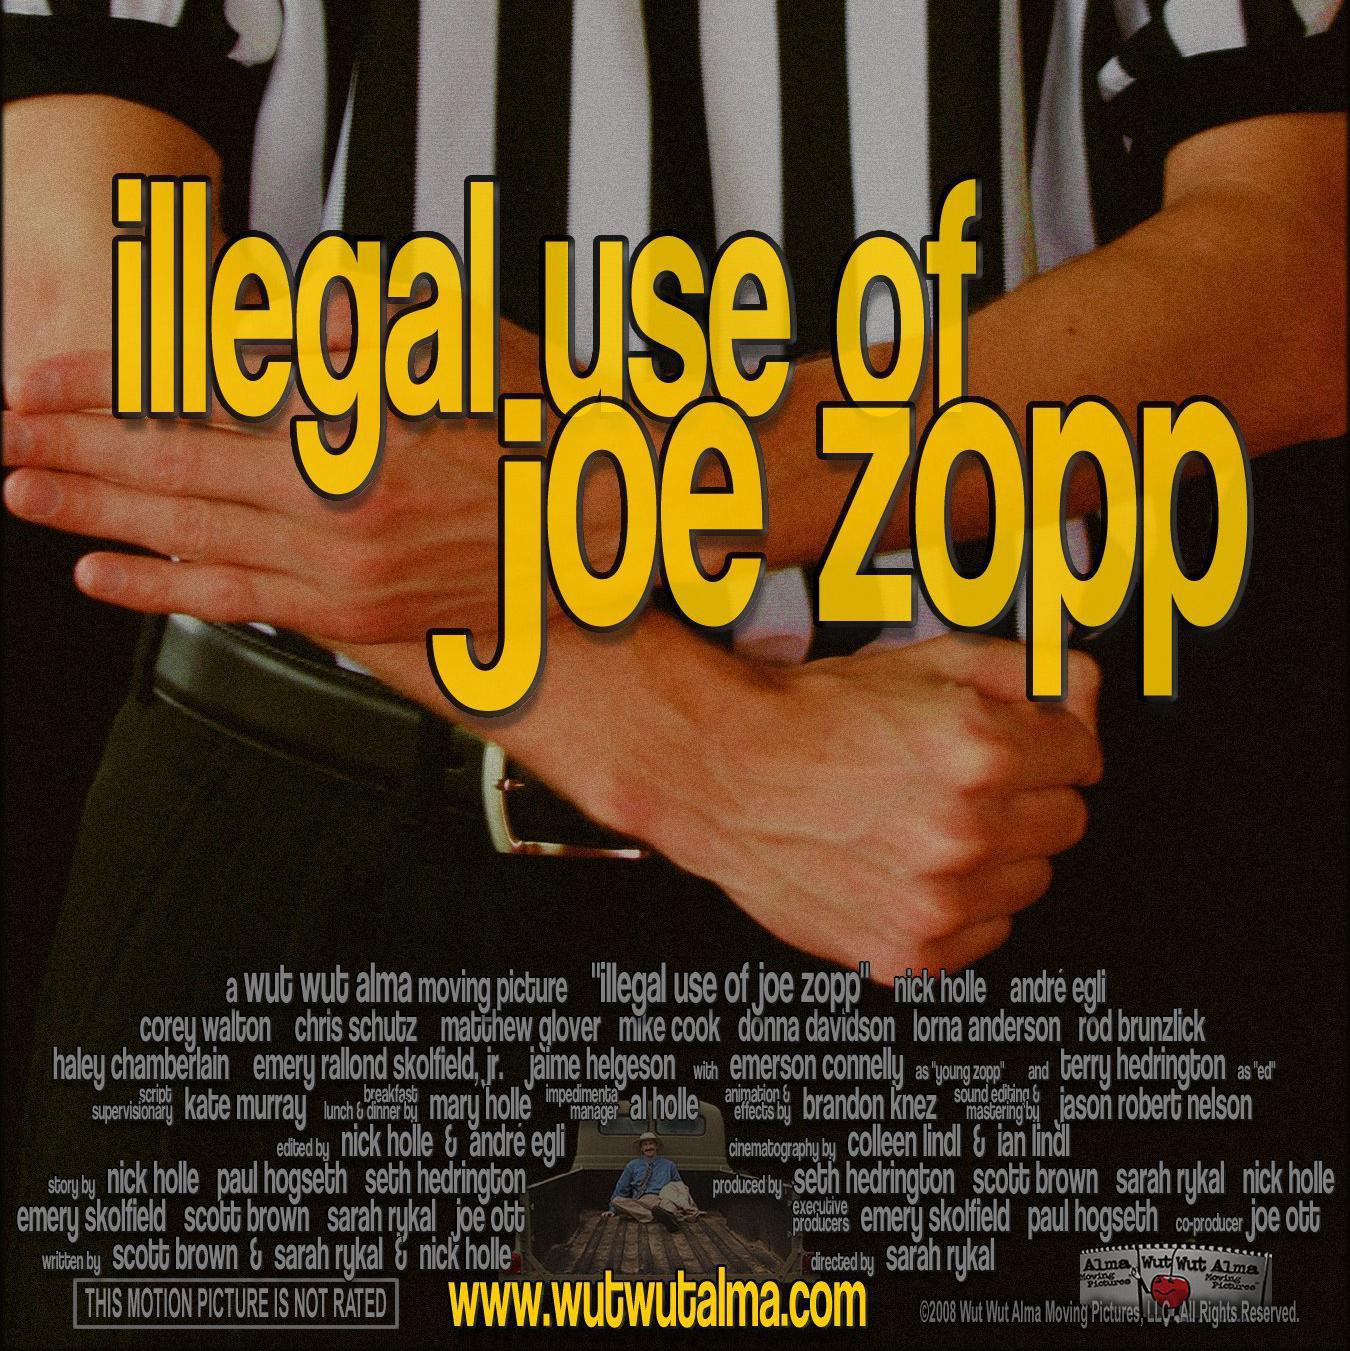 Illegal Use of Joe Zopp